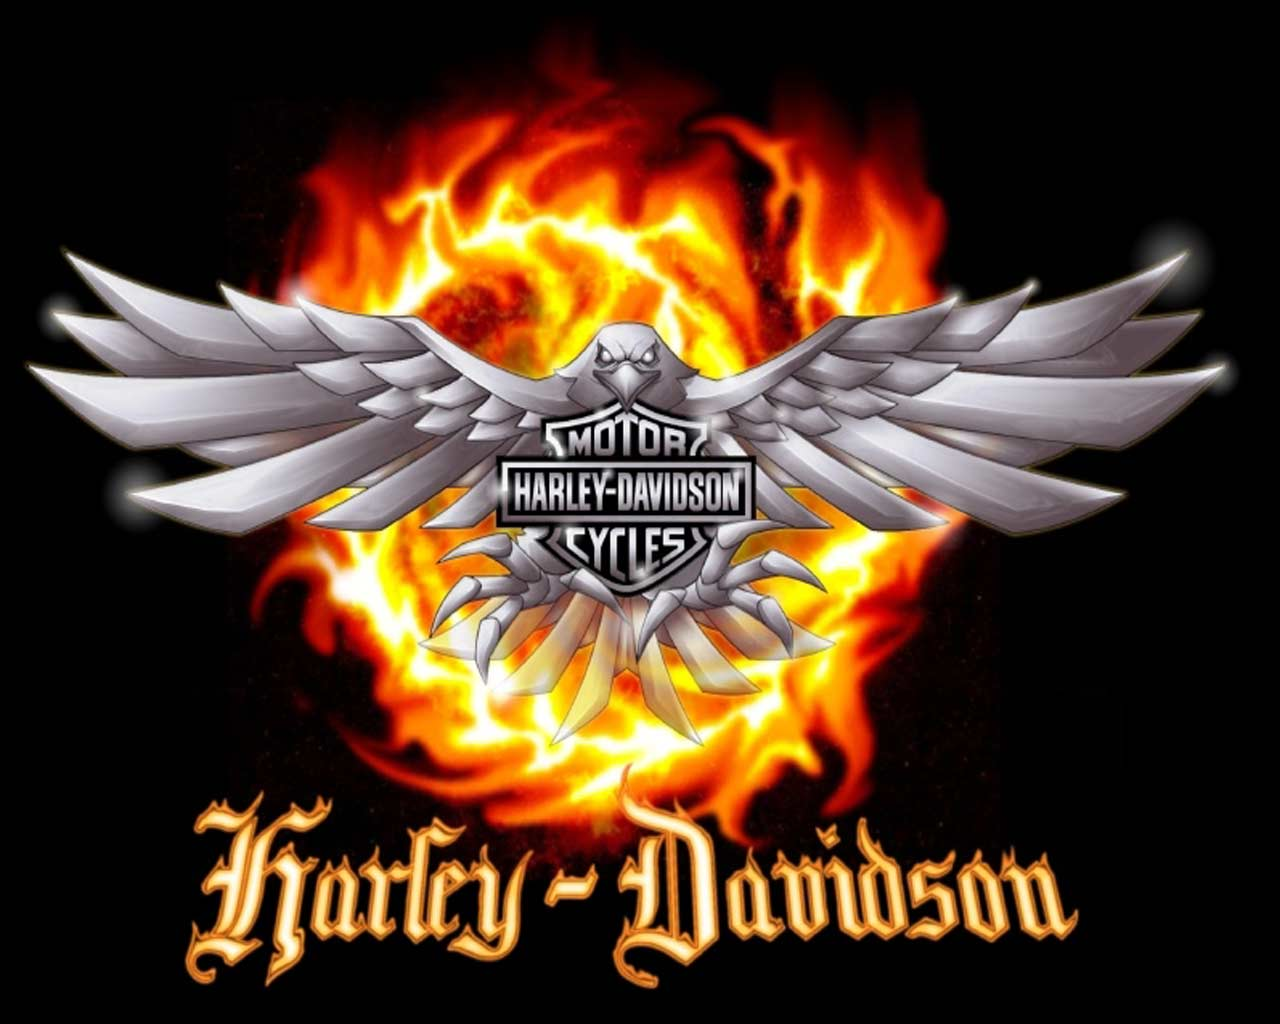 Harley Davidson Logo Wallpaper 6919 Hd Wallpapers in Logos   Imagesci 1280x1024